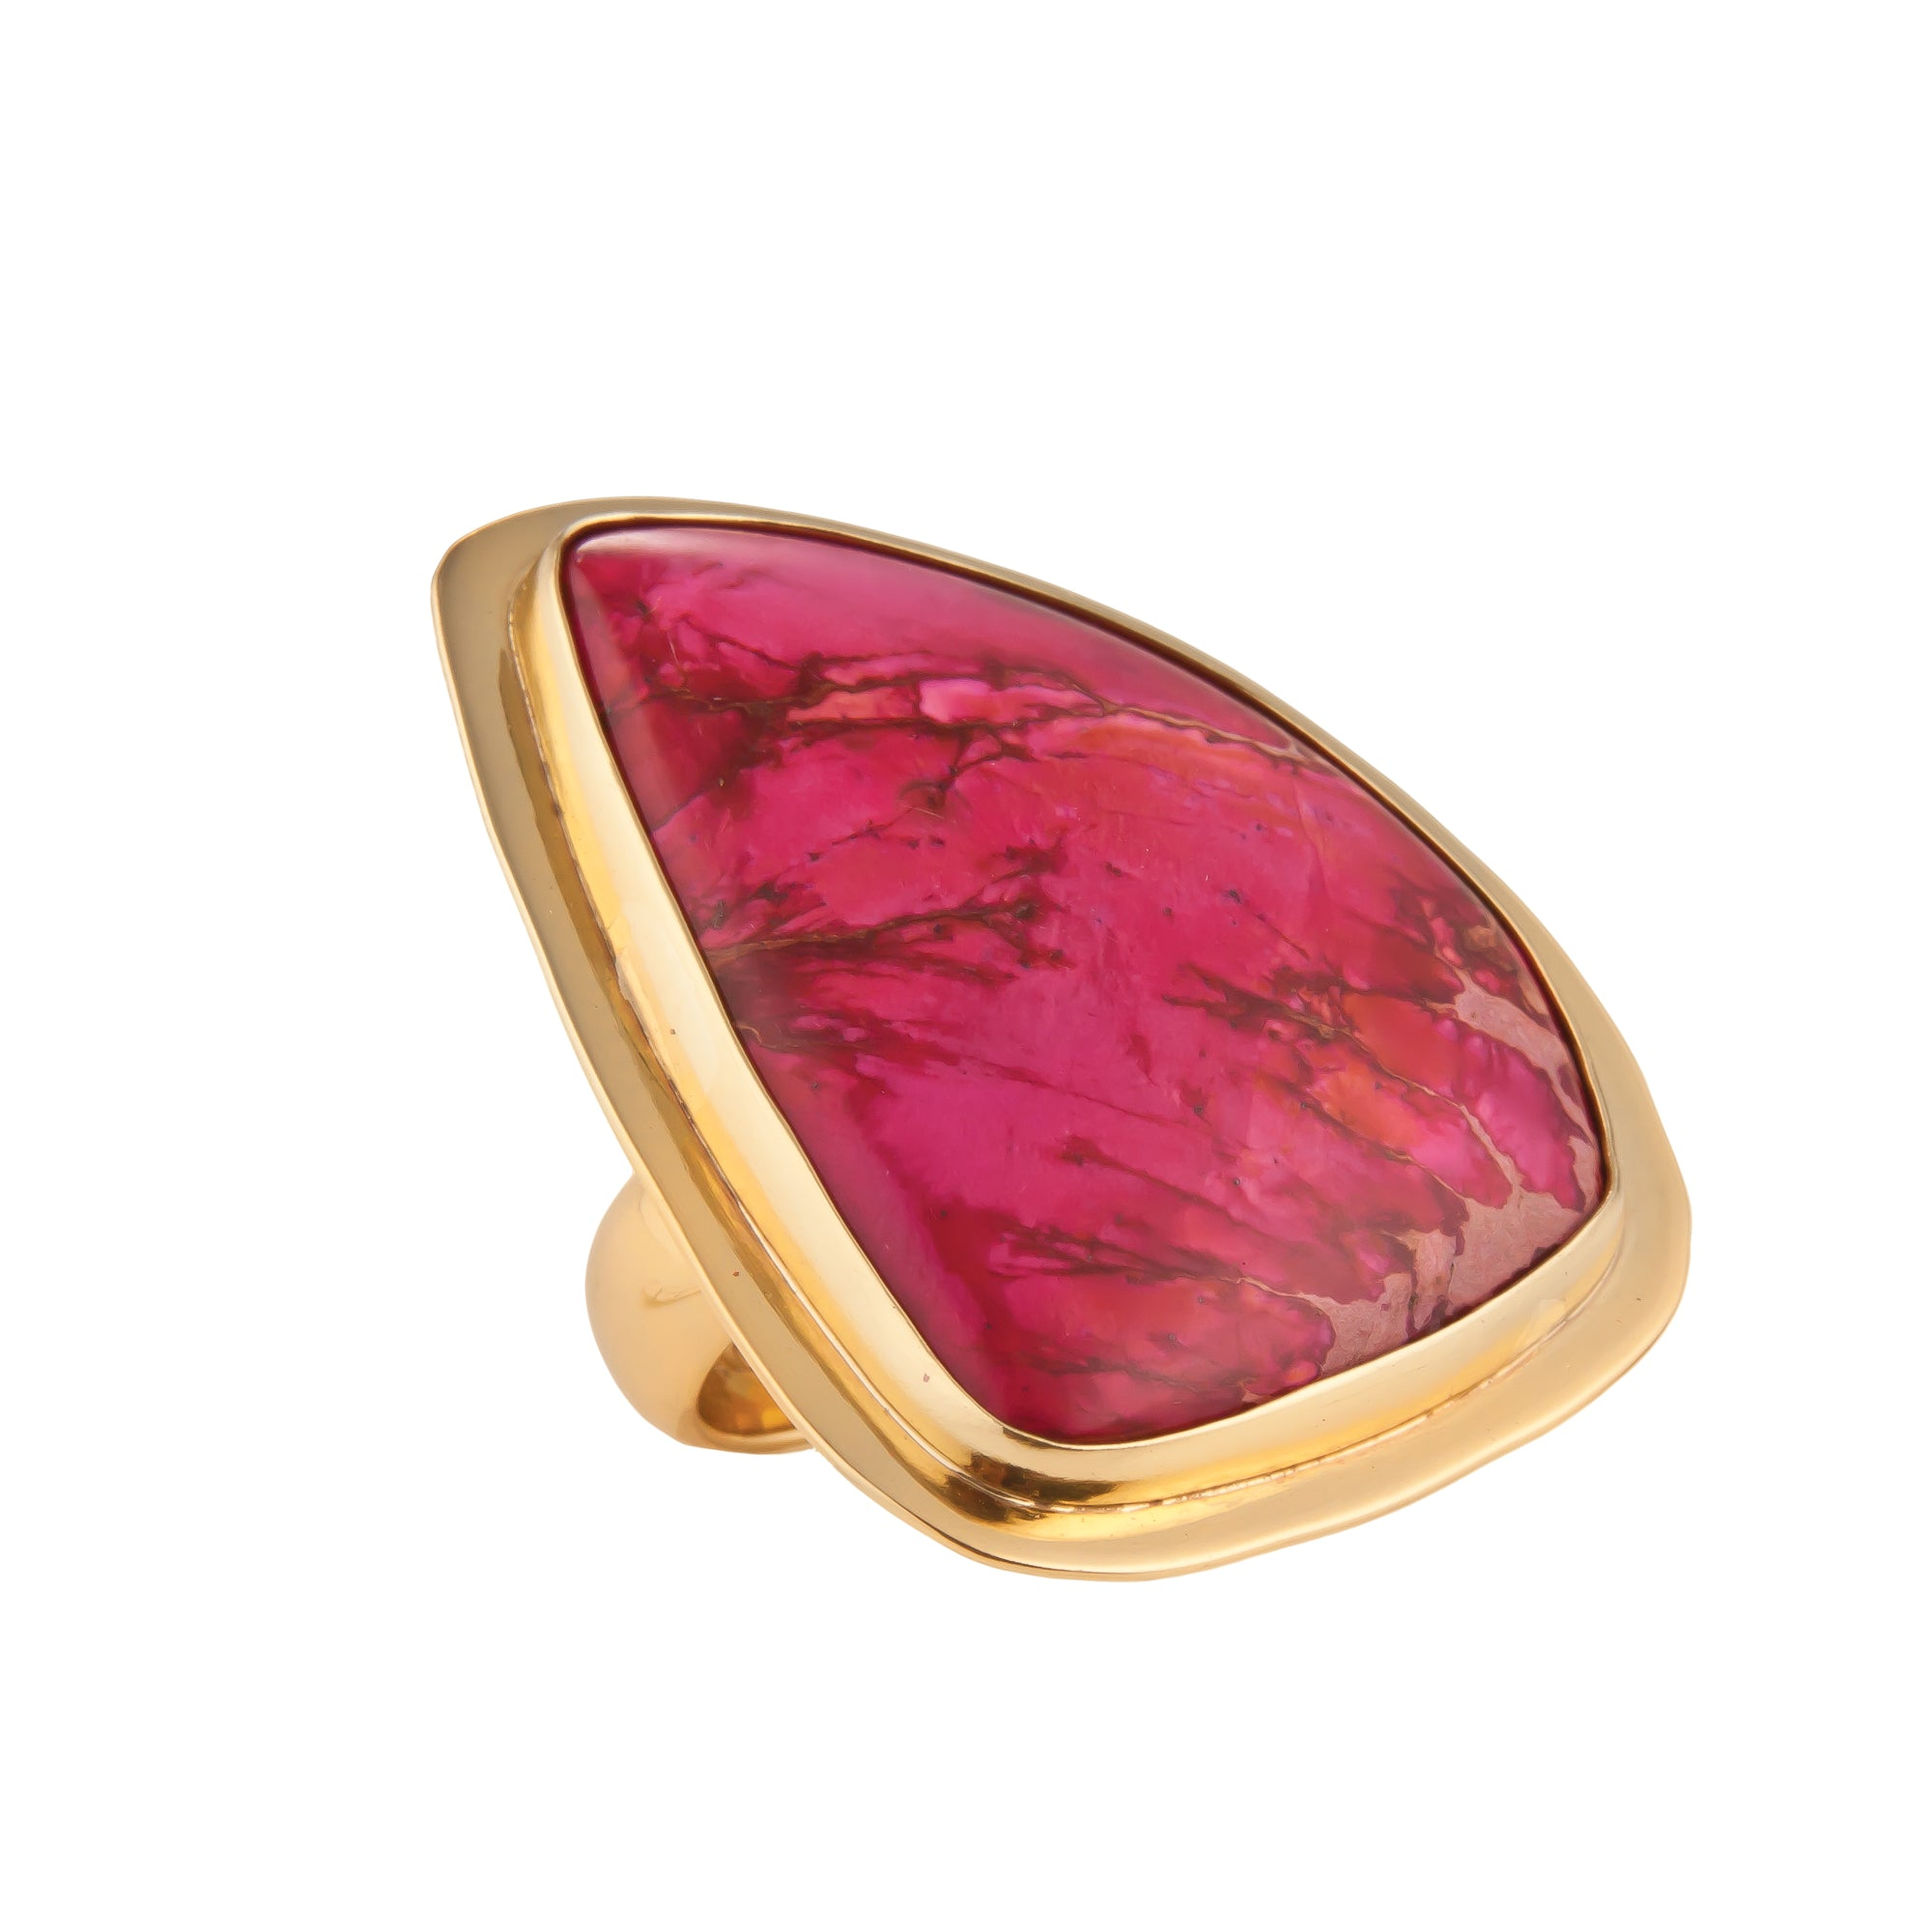 Alchemia Pink Jasper Ring with Lip